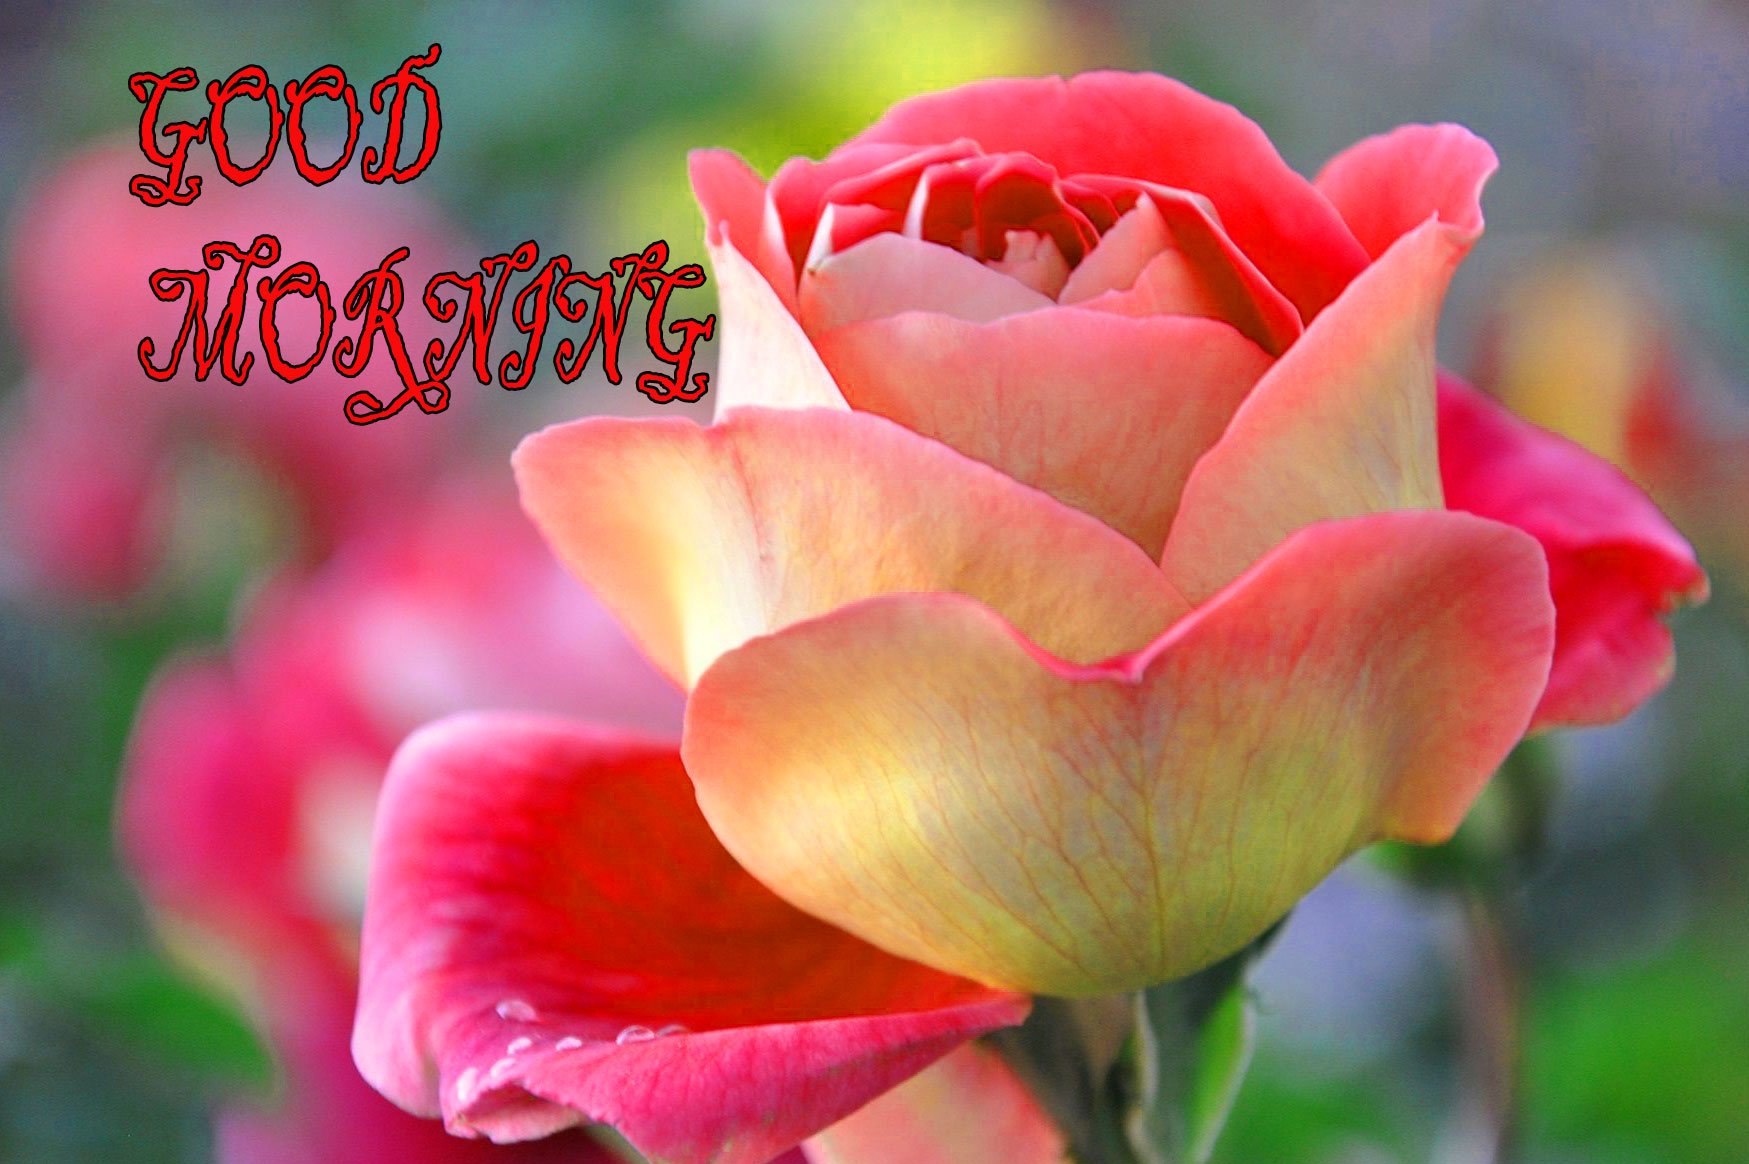 GOOD MORNING IMAGE WITH BEAUTIFUL FLOWERS NATURE WALLPAPER PIC FOR WIFE & HUSBAND